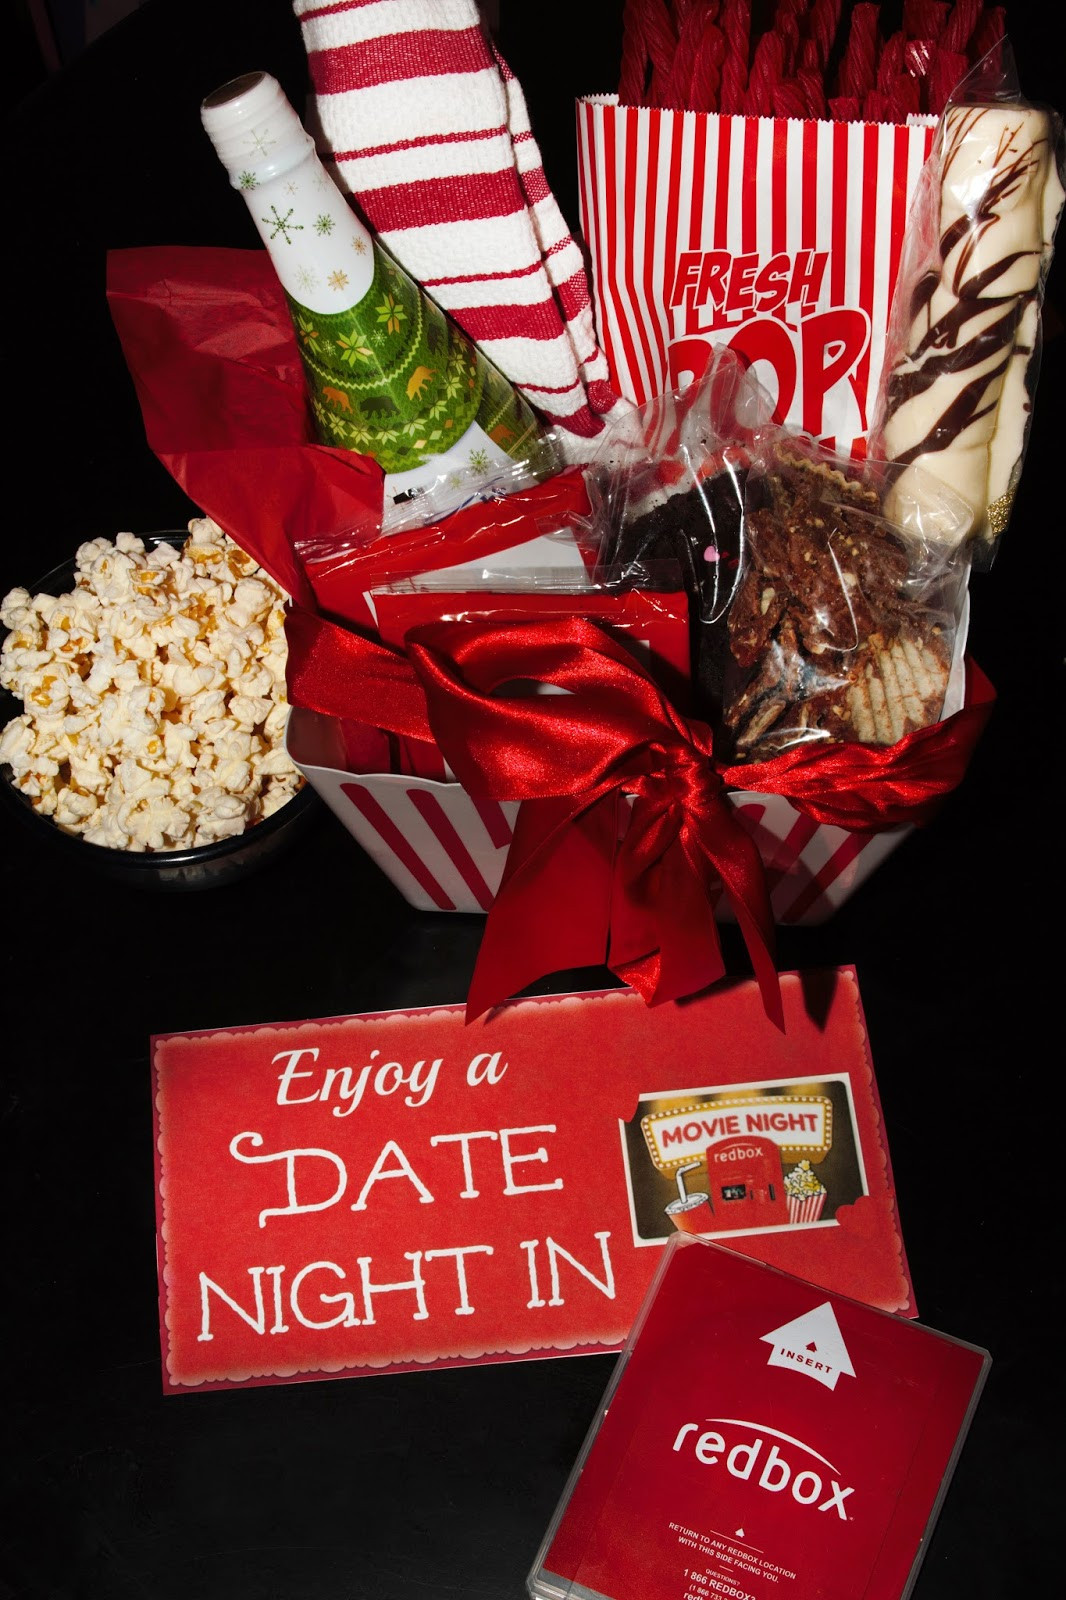 Best ideas about Date Night Gift Ideas . Save or Pin For the Love of Food DIY Date Night In Gift Basket with Now.